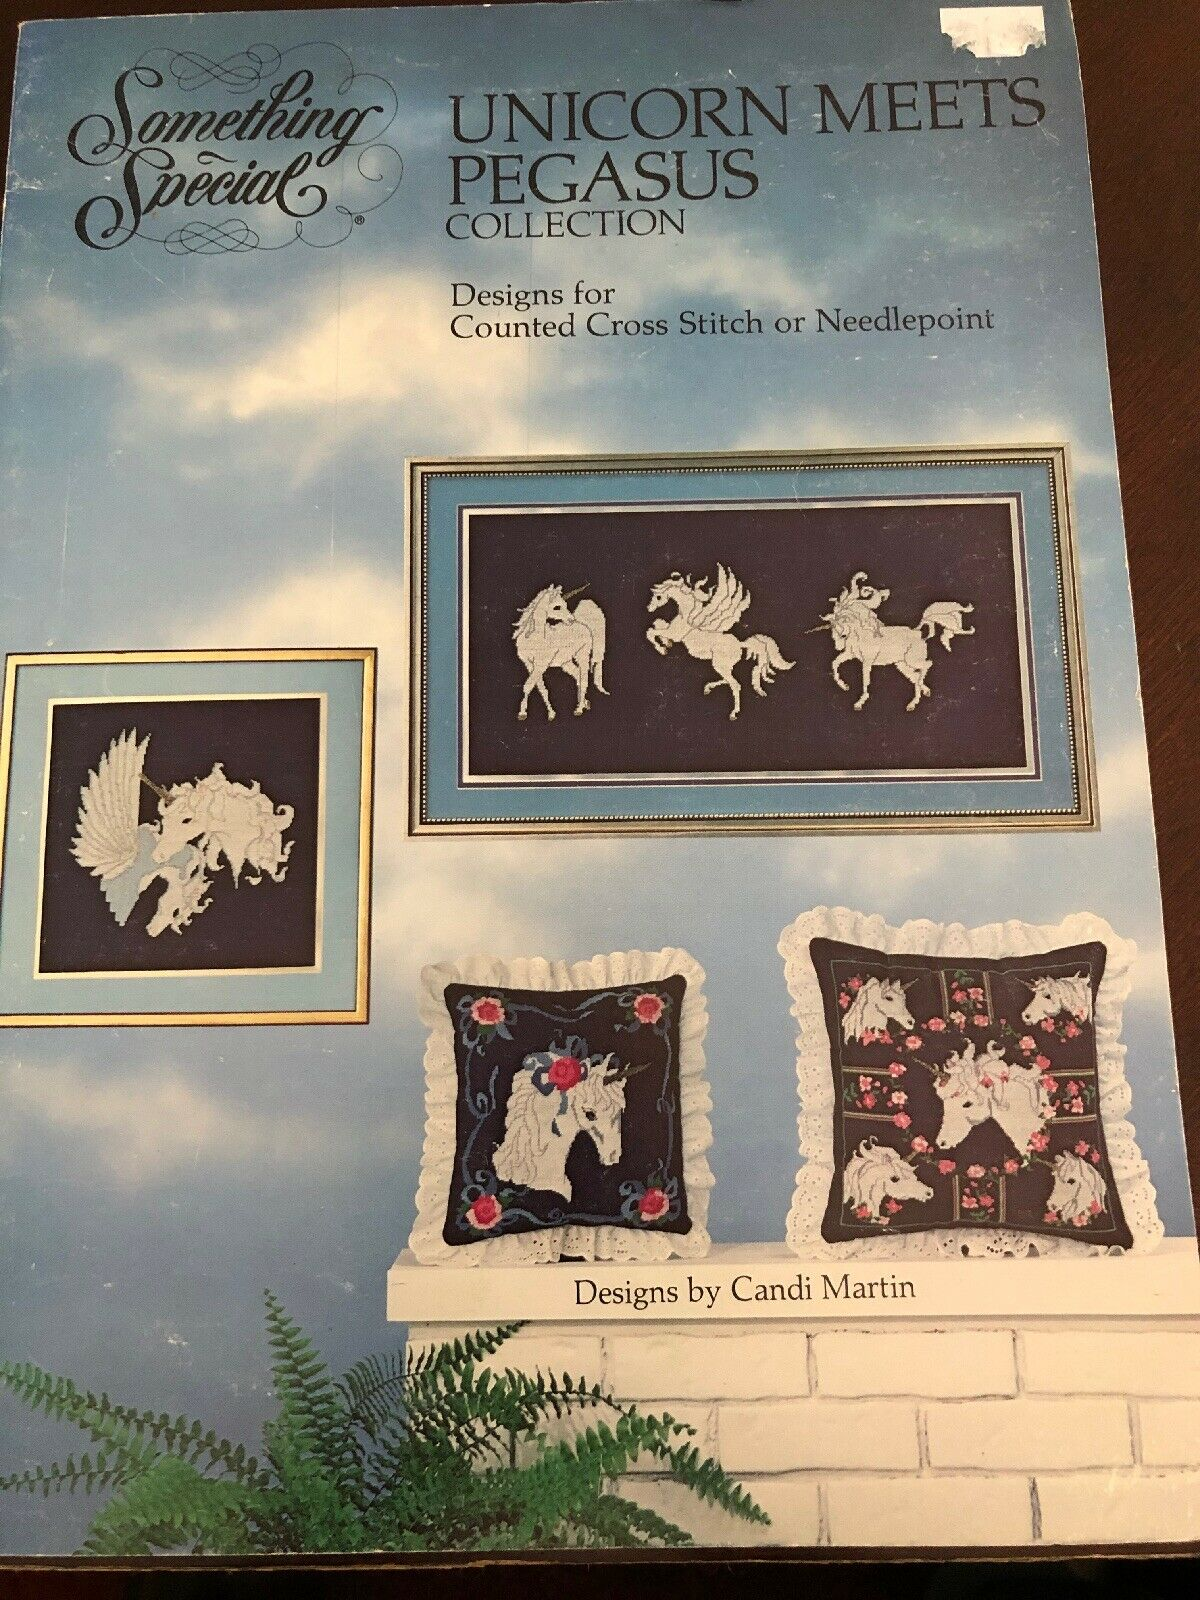 Designs Unicorn collection in counted thread cross stitch and needlepoint